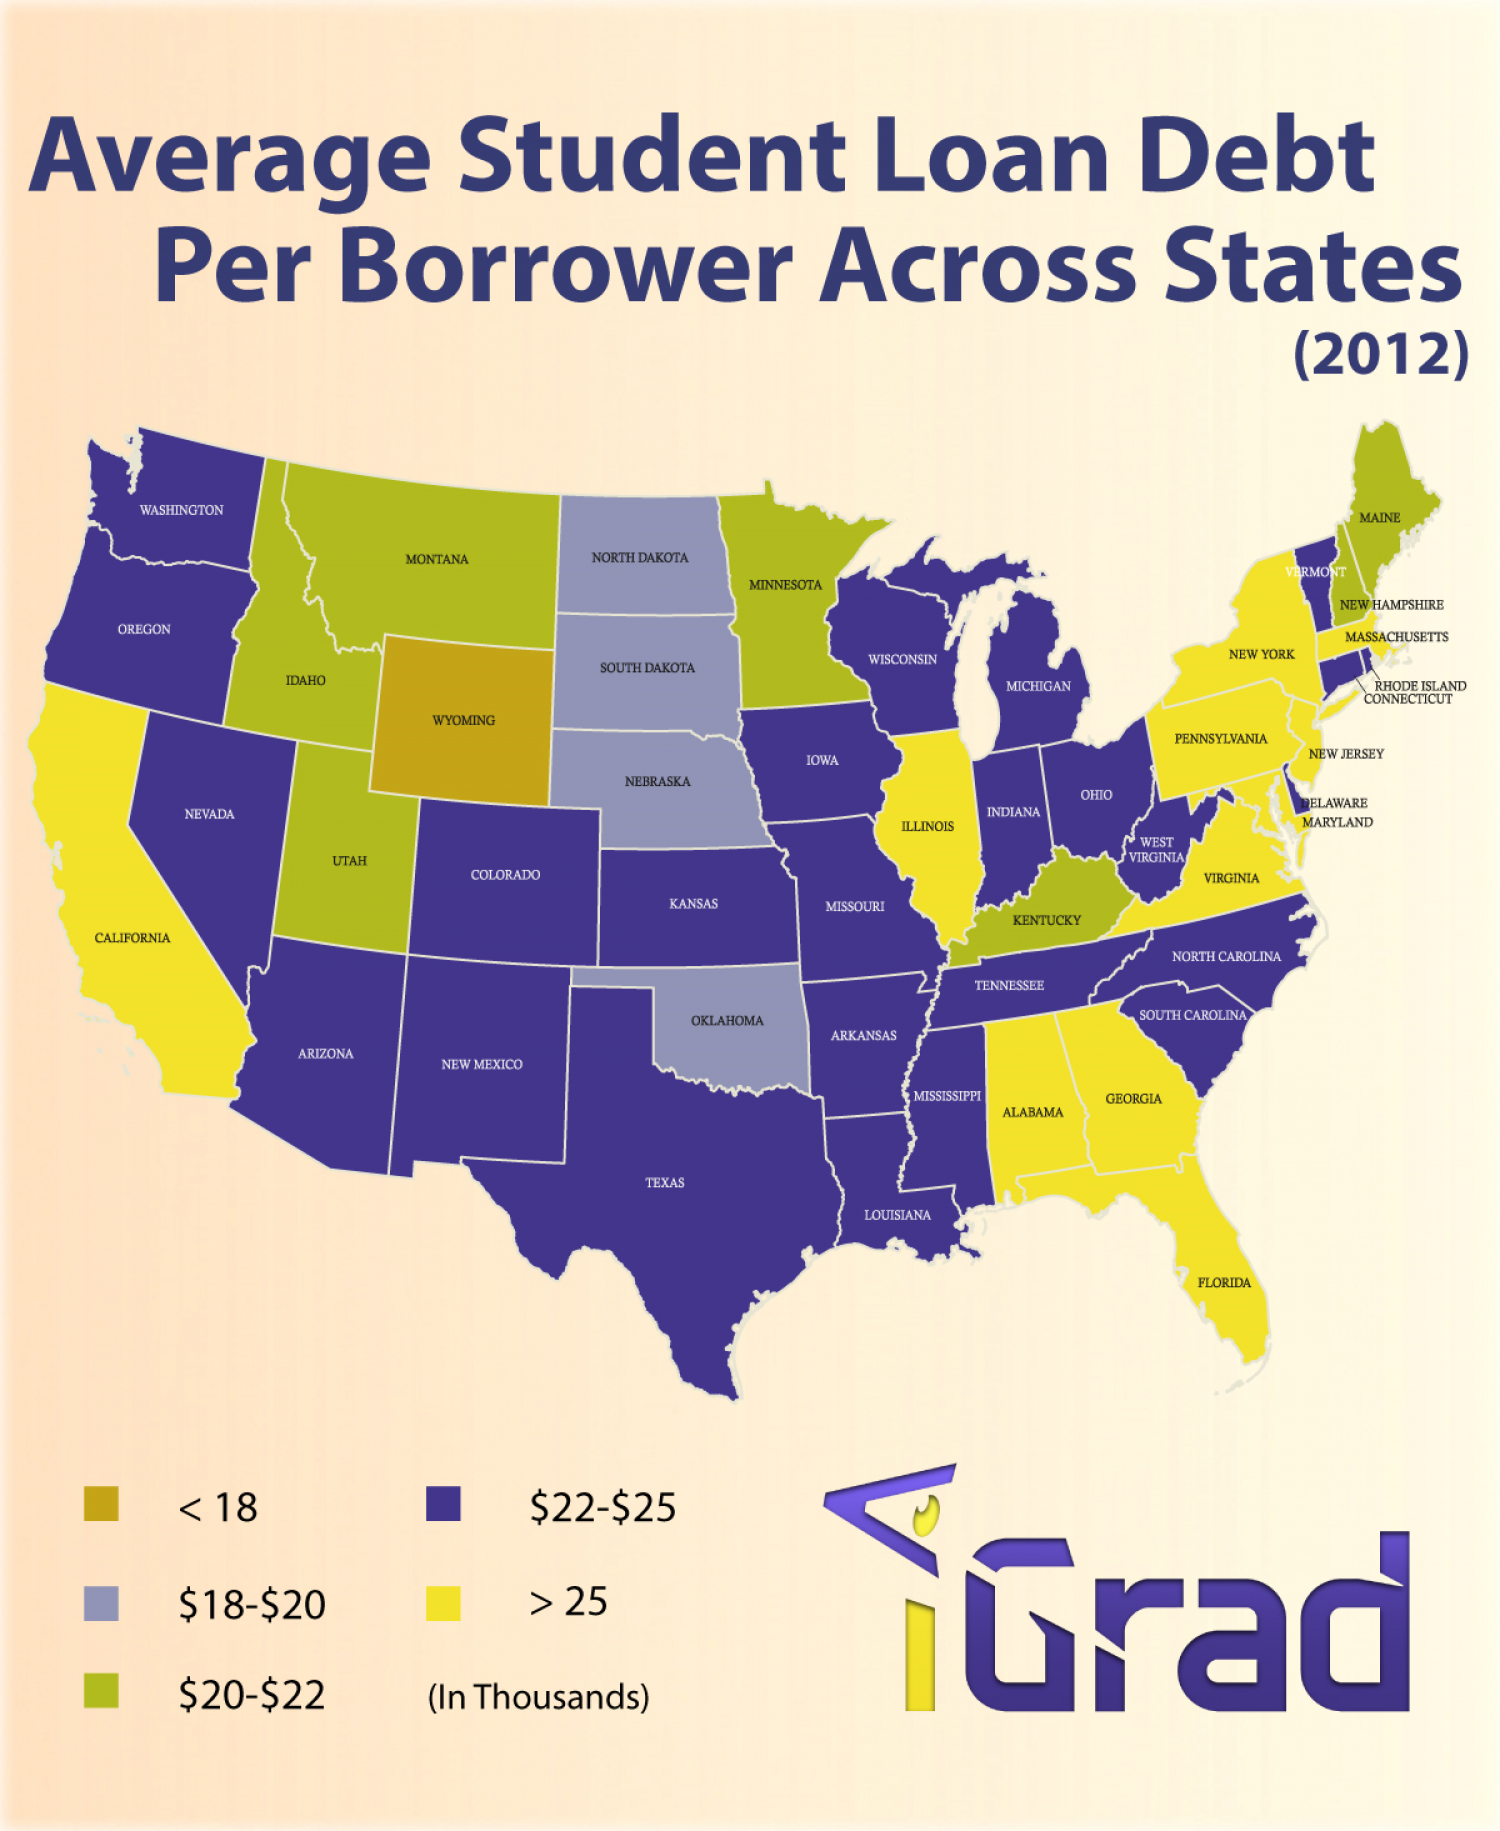 Average Student Loan Debt Per Borrower Across States (2012) Infographic